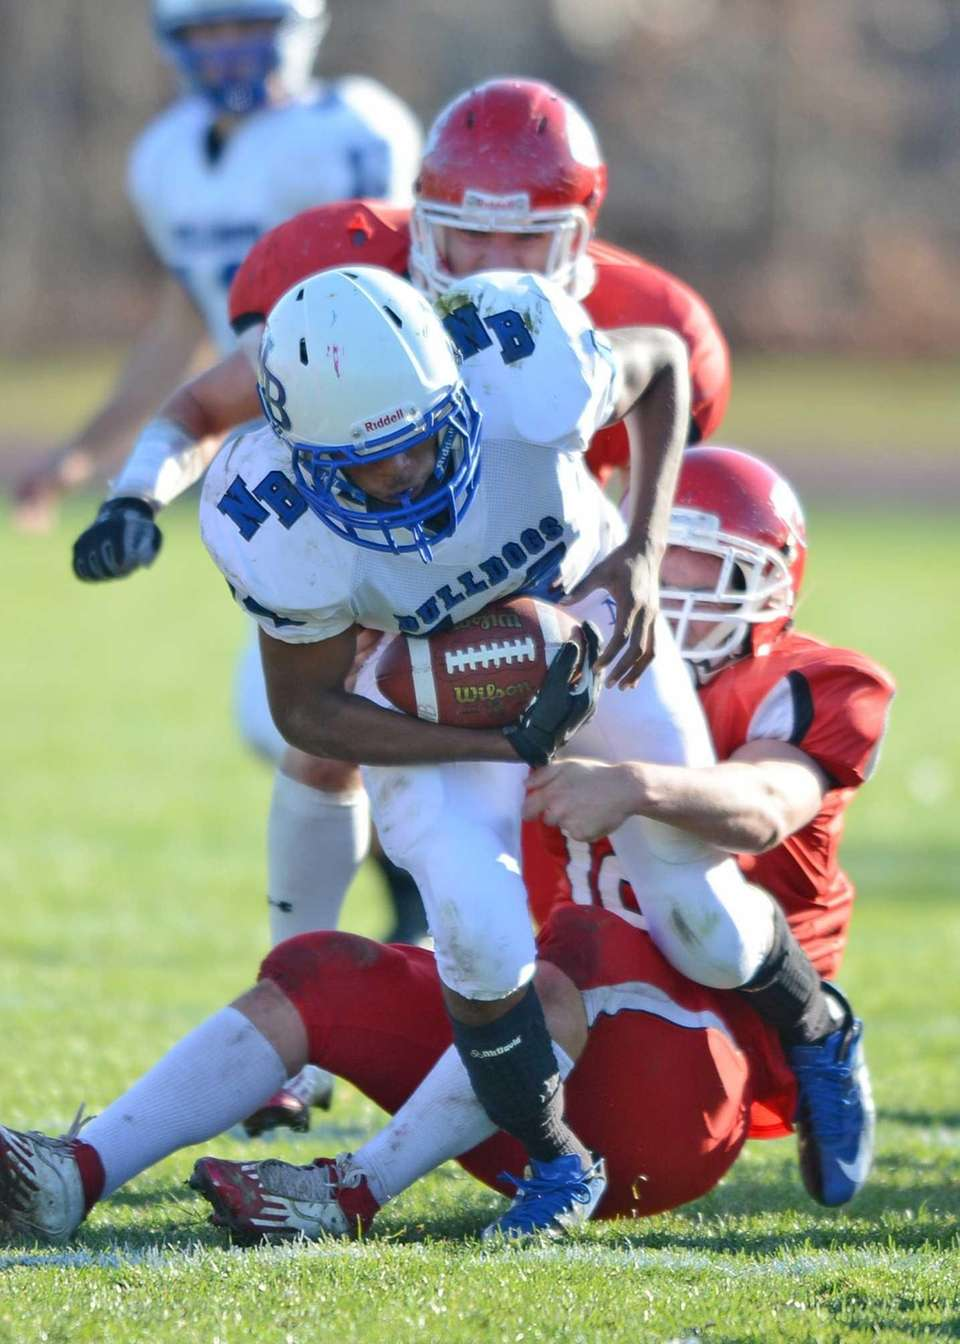 North Babylon's Melijah Previs fights for additional yards